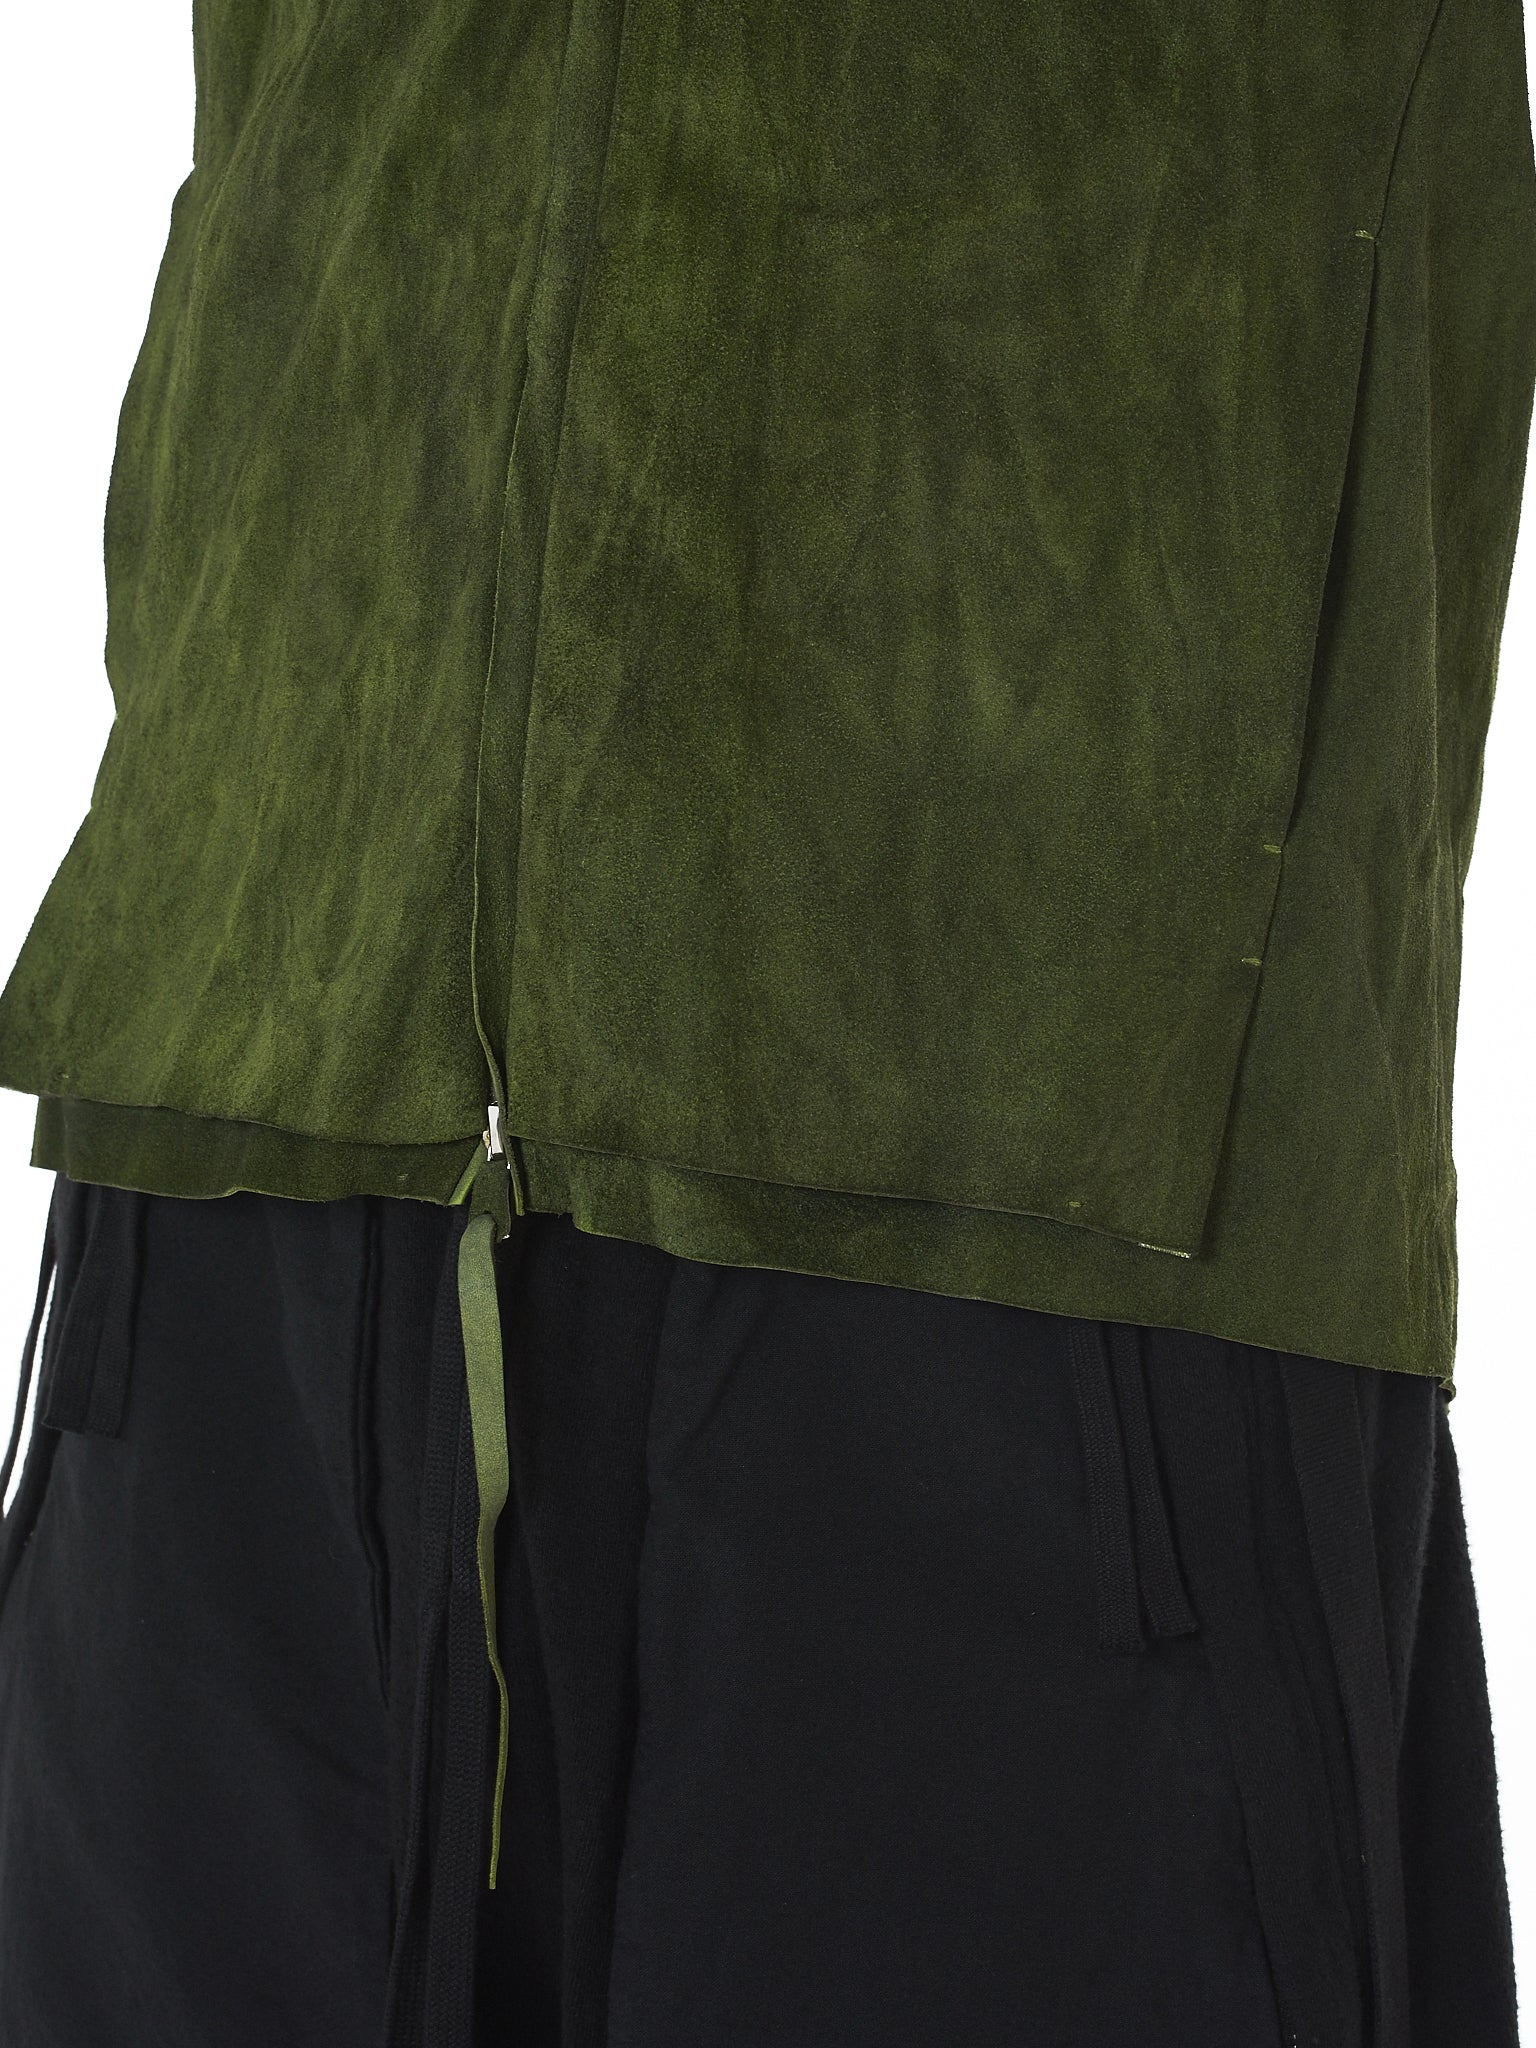 'Cross' Raw Leather Aviator Jacket (J224HZ-NUB-R-0-6-MACAW-GREEN)